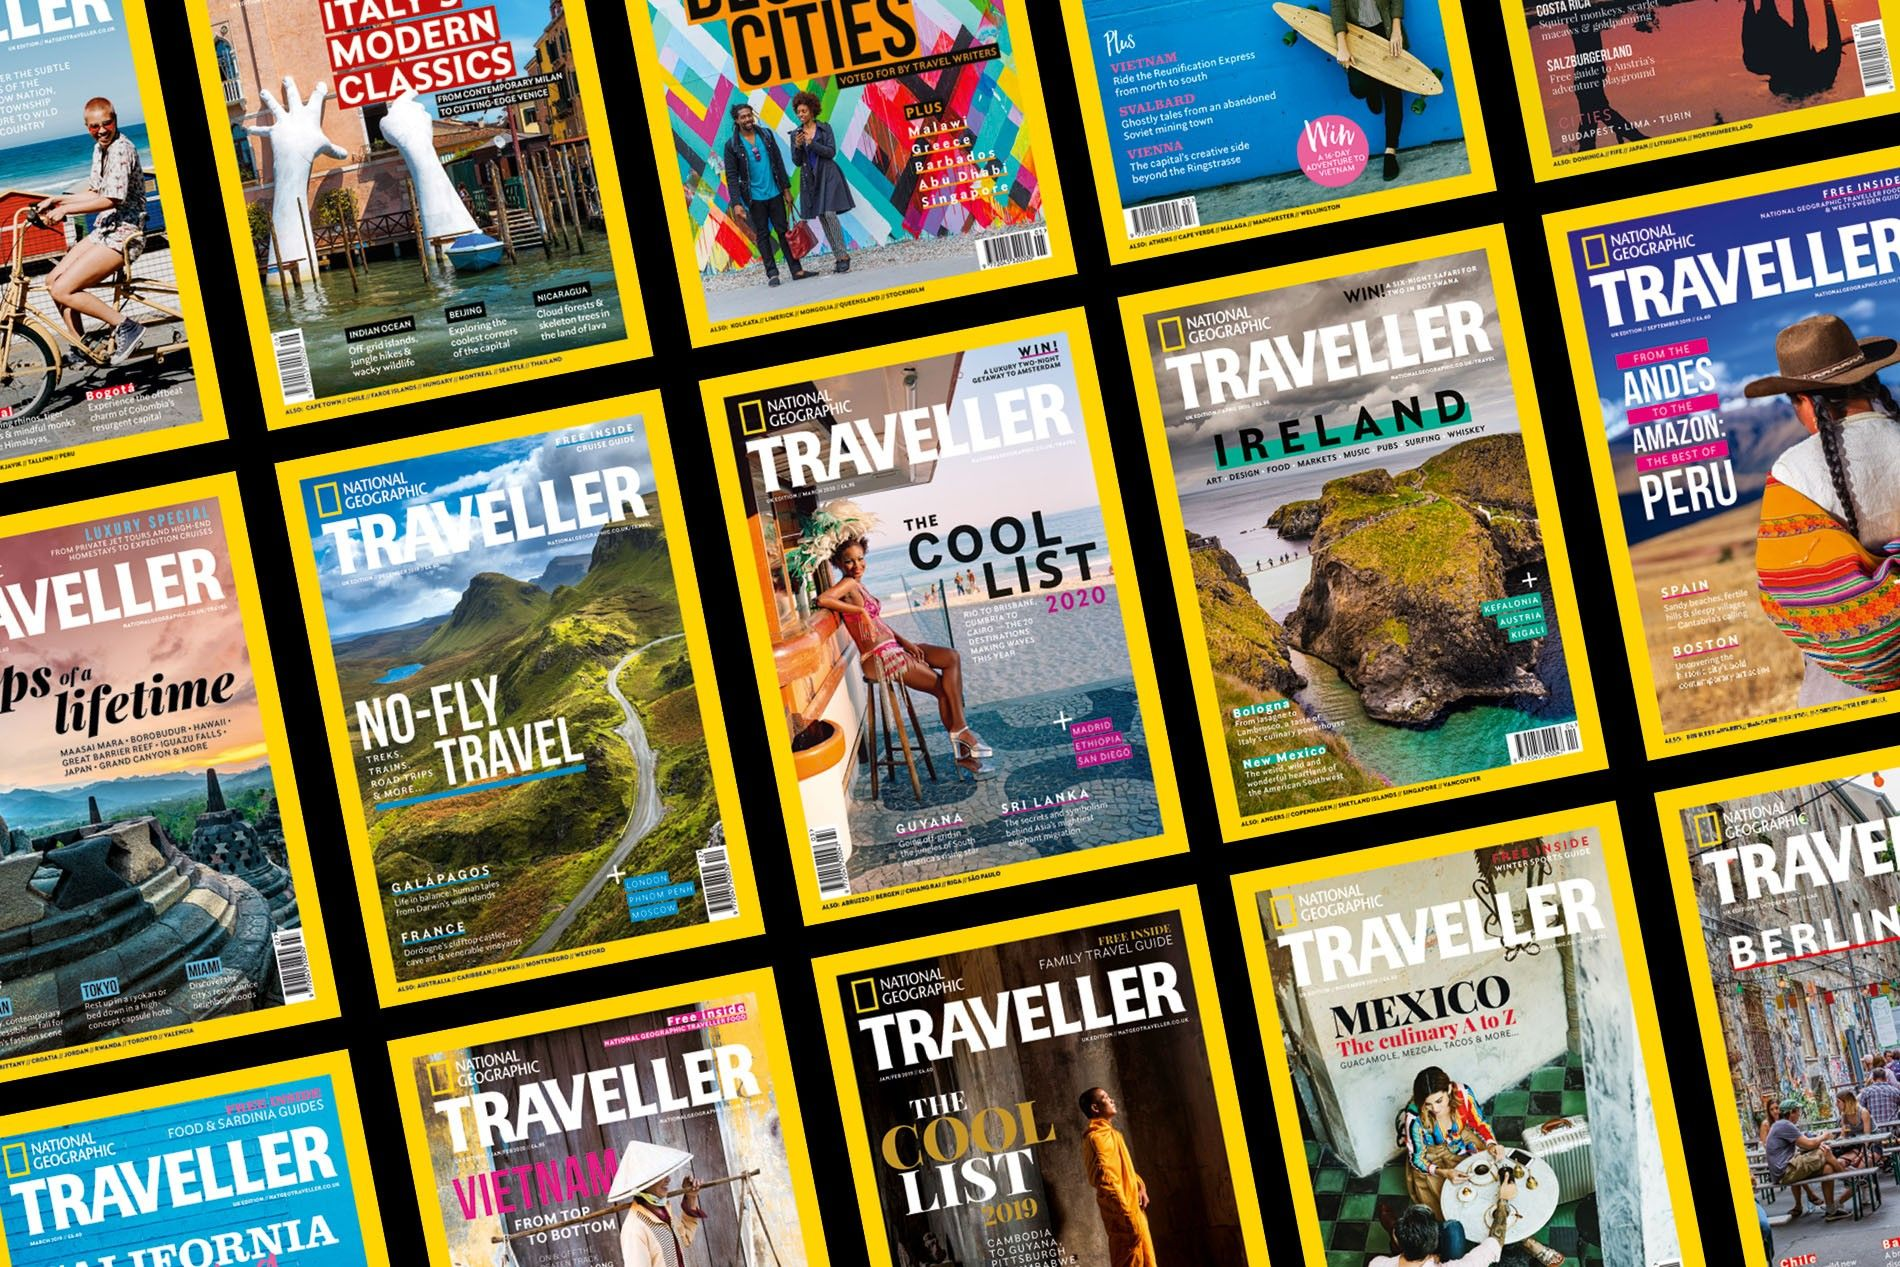 What you can expect from National Geographic Traveller in light of the coronavirus crisis